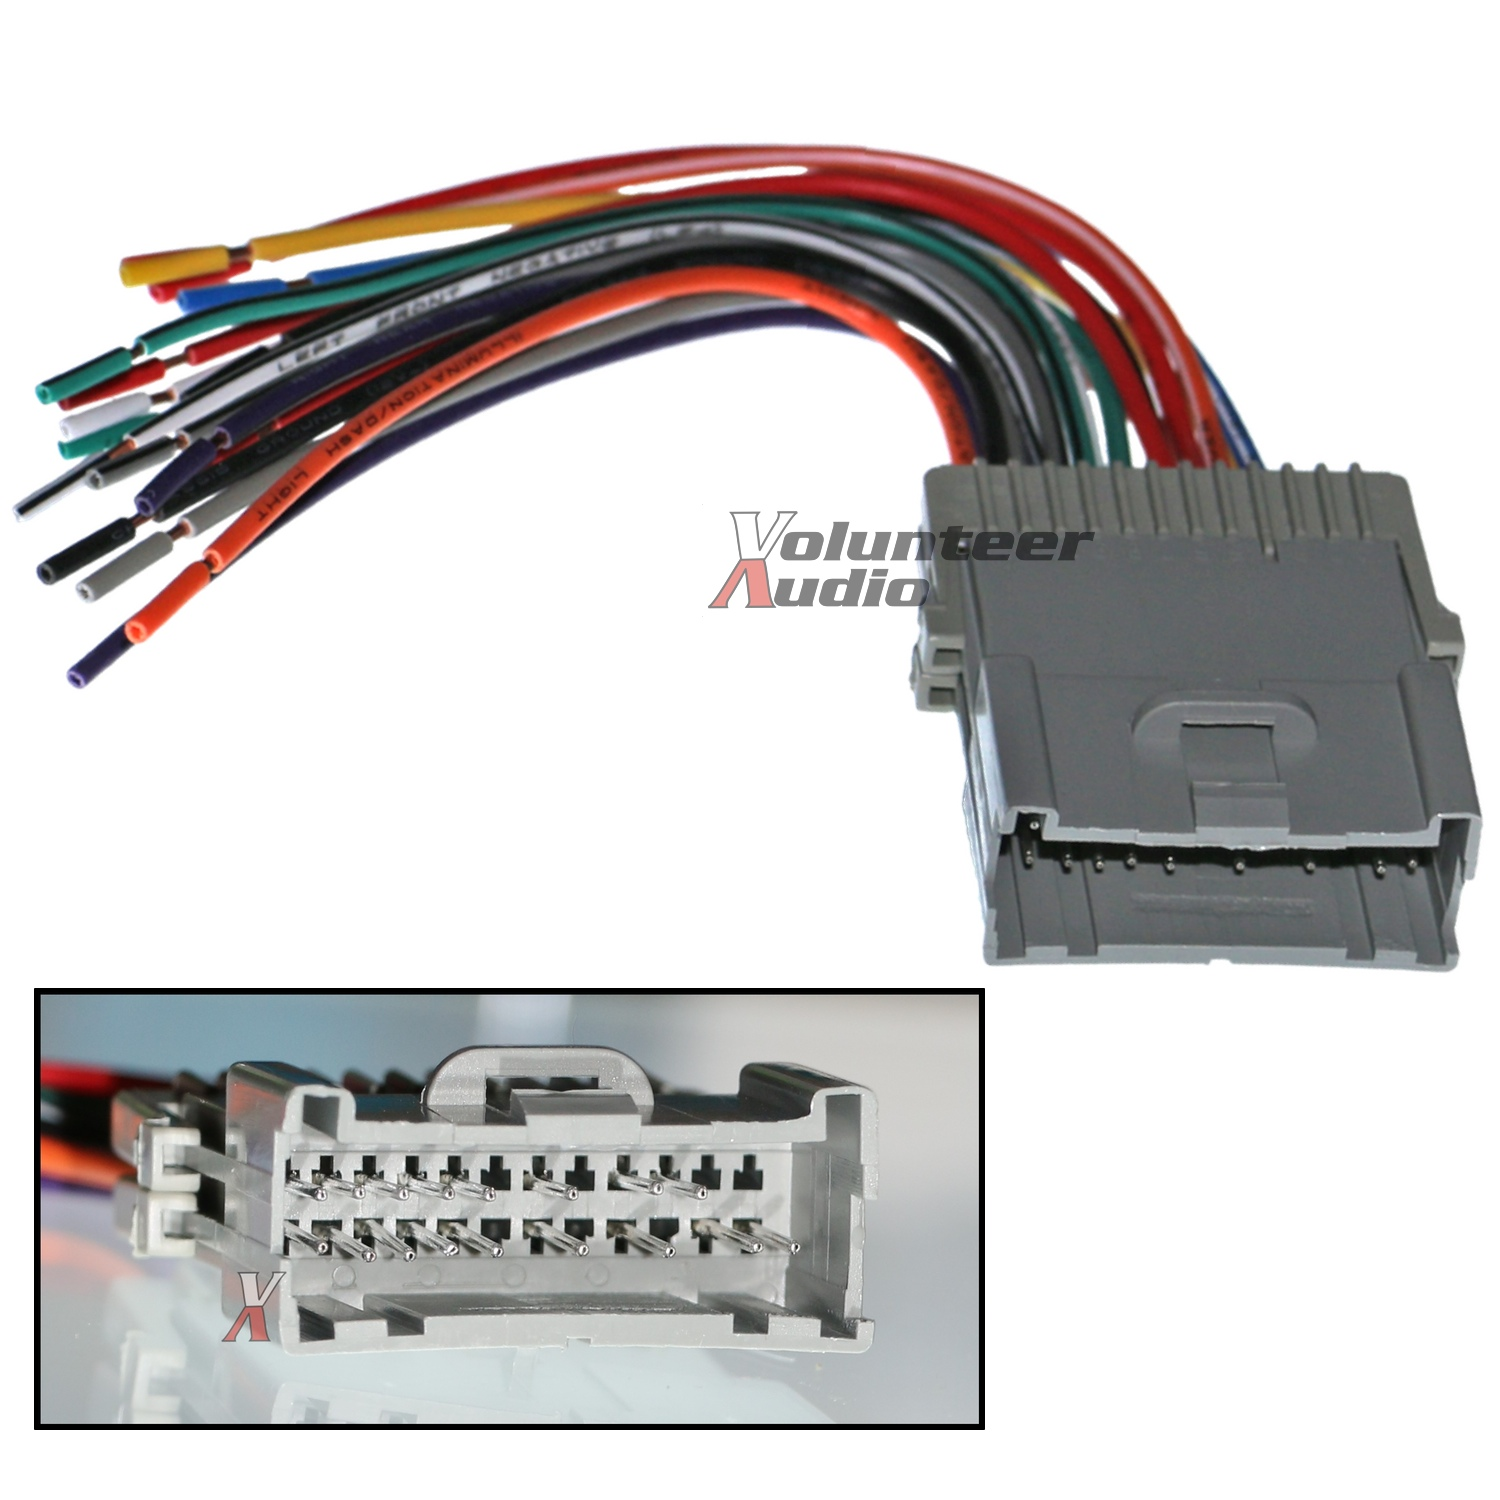 wiring diagrams for car stereo installations 6 volt rv battery diagram saturn cd player harness wire